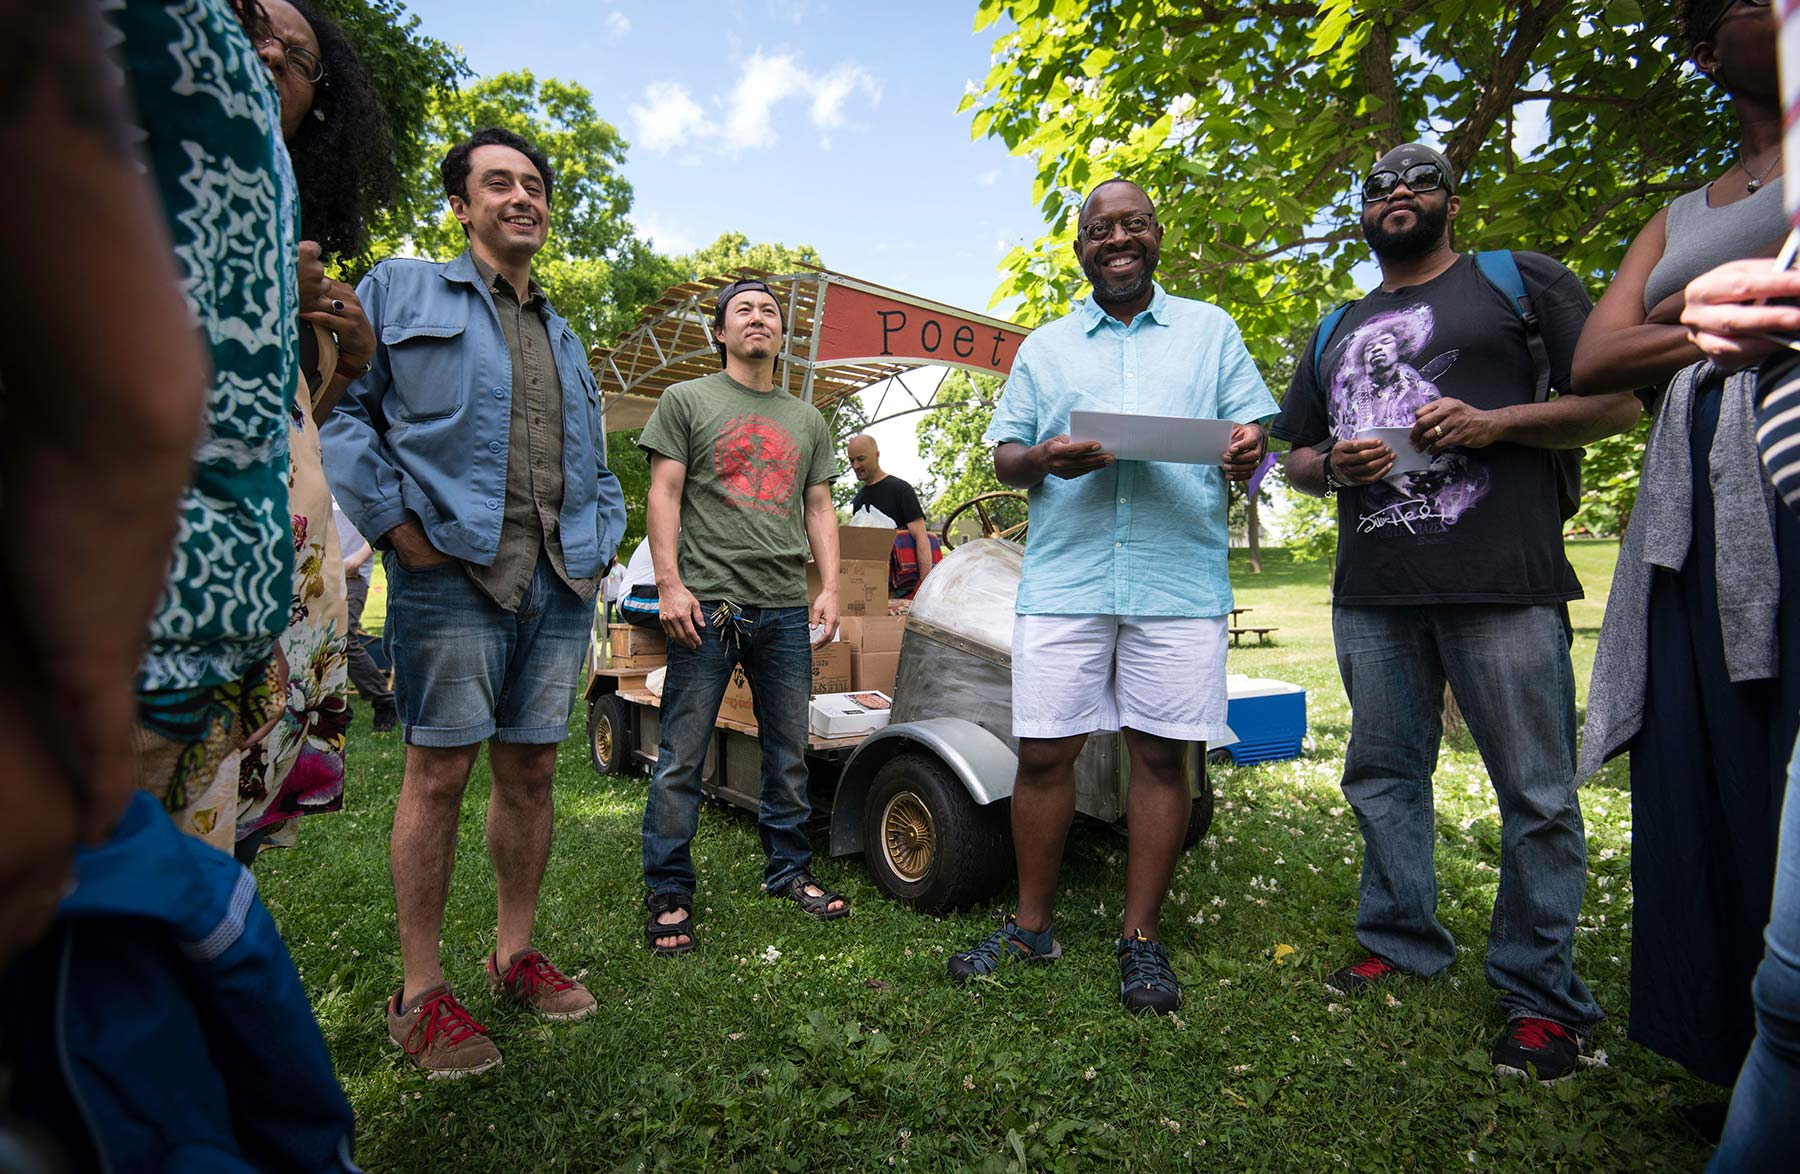 Poets gather for the Poetry and Pie Picnic by Artist Molly Van Avery. Photo Credit: Bruce Silcox